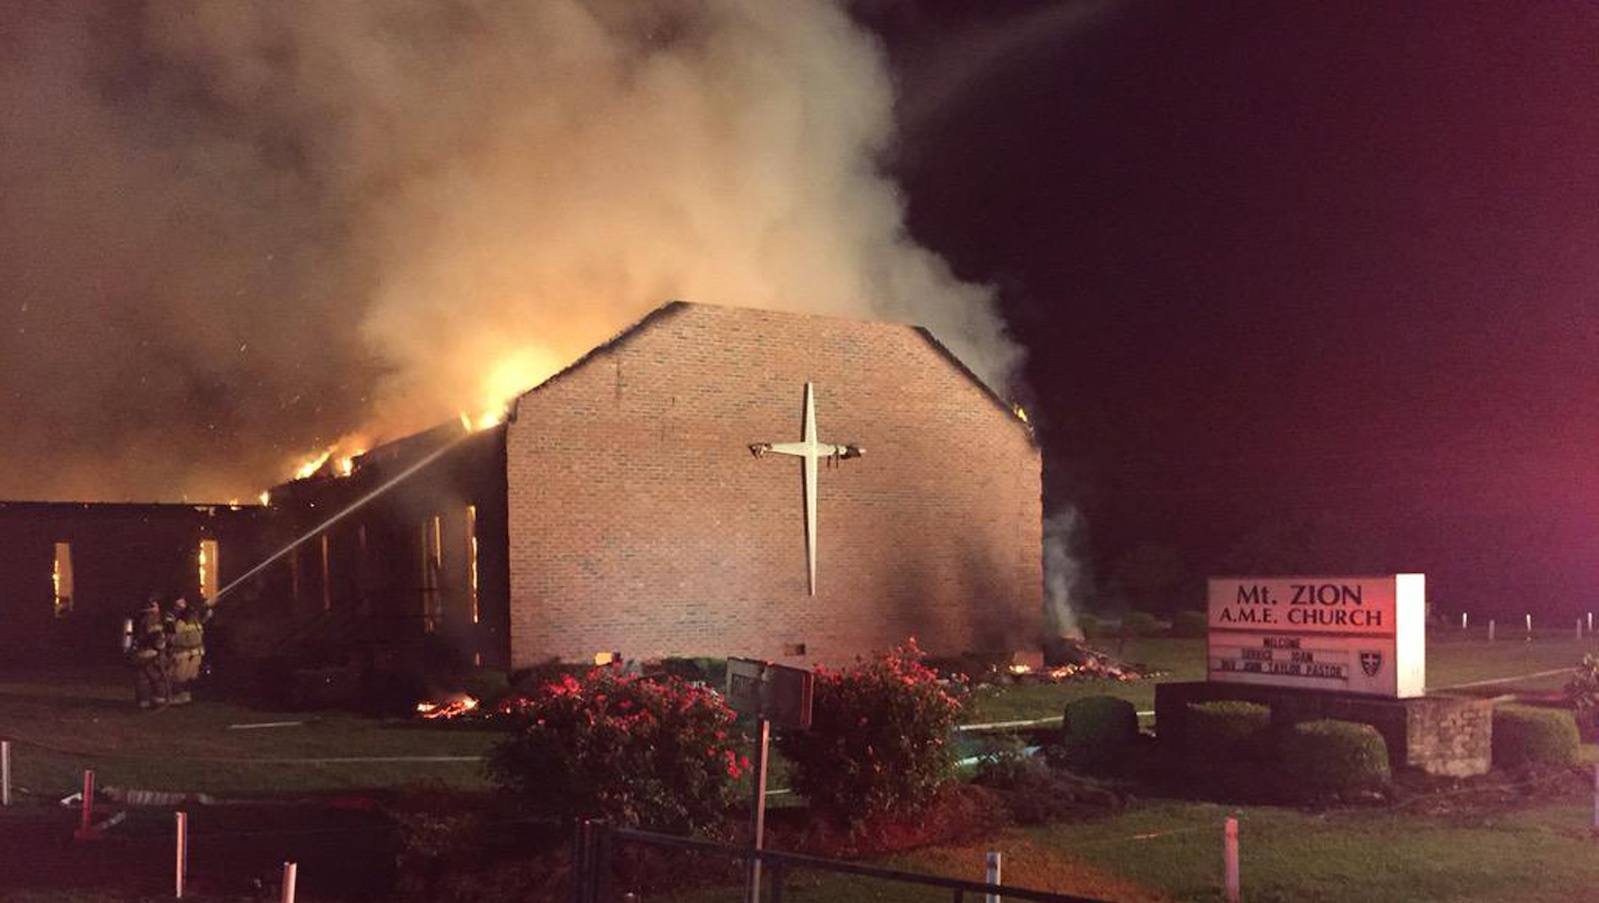 black churches keep burning down no media 2015